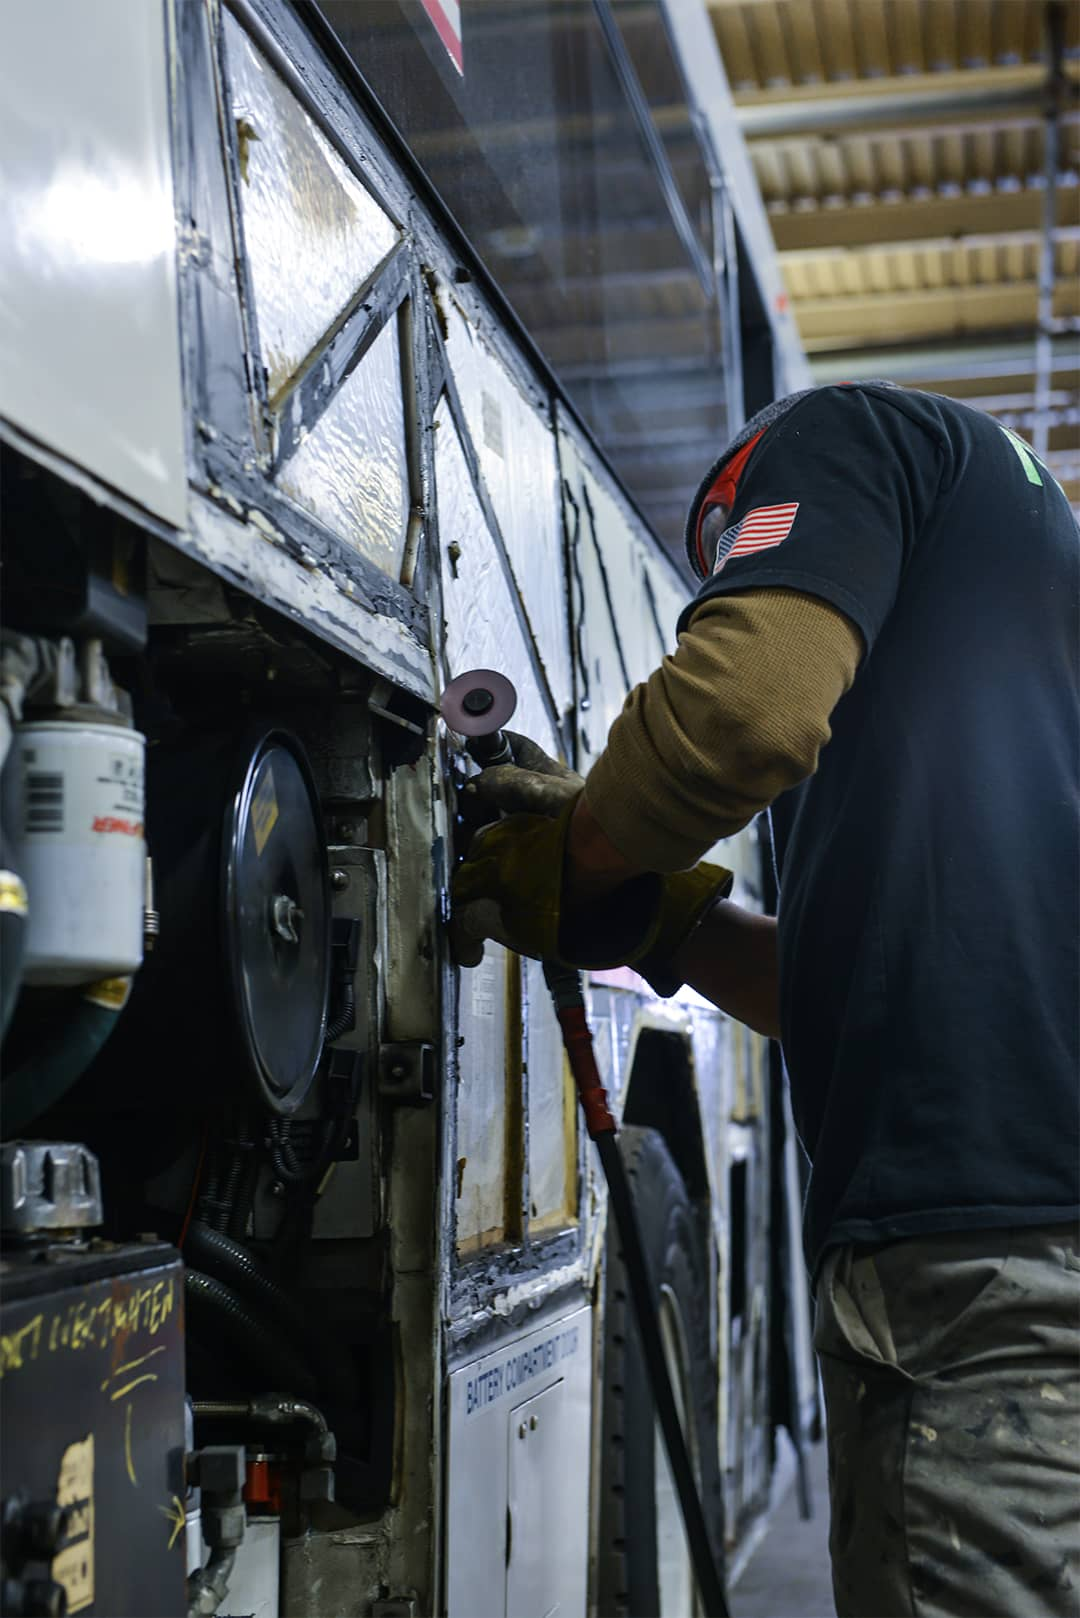 Worker prepping bus